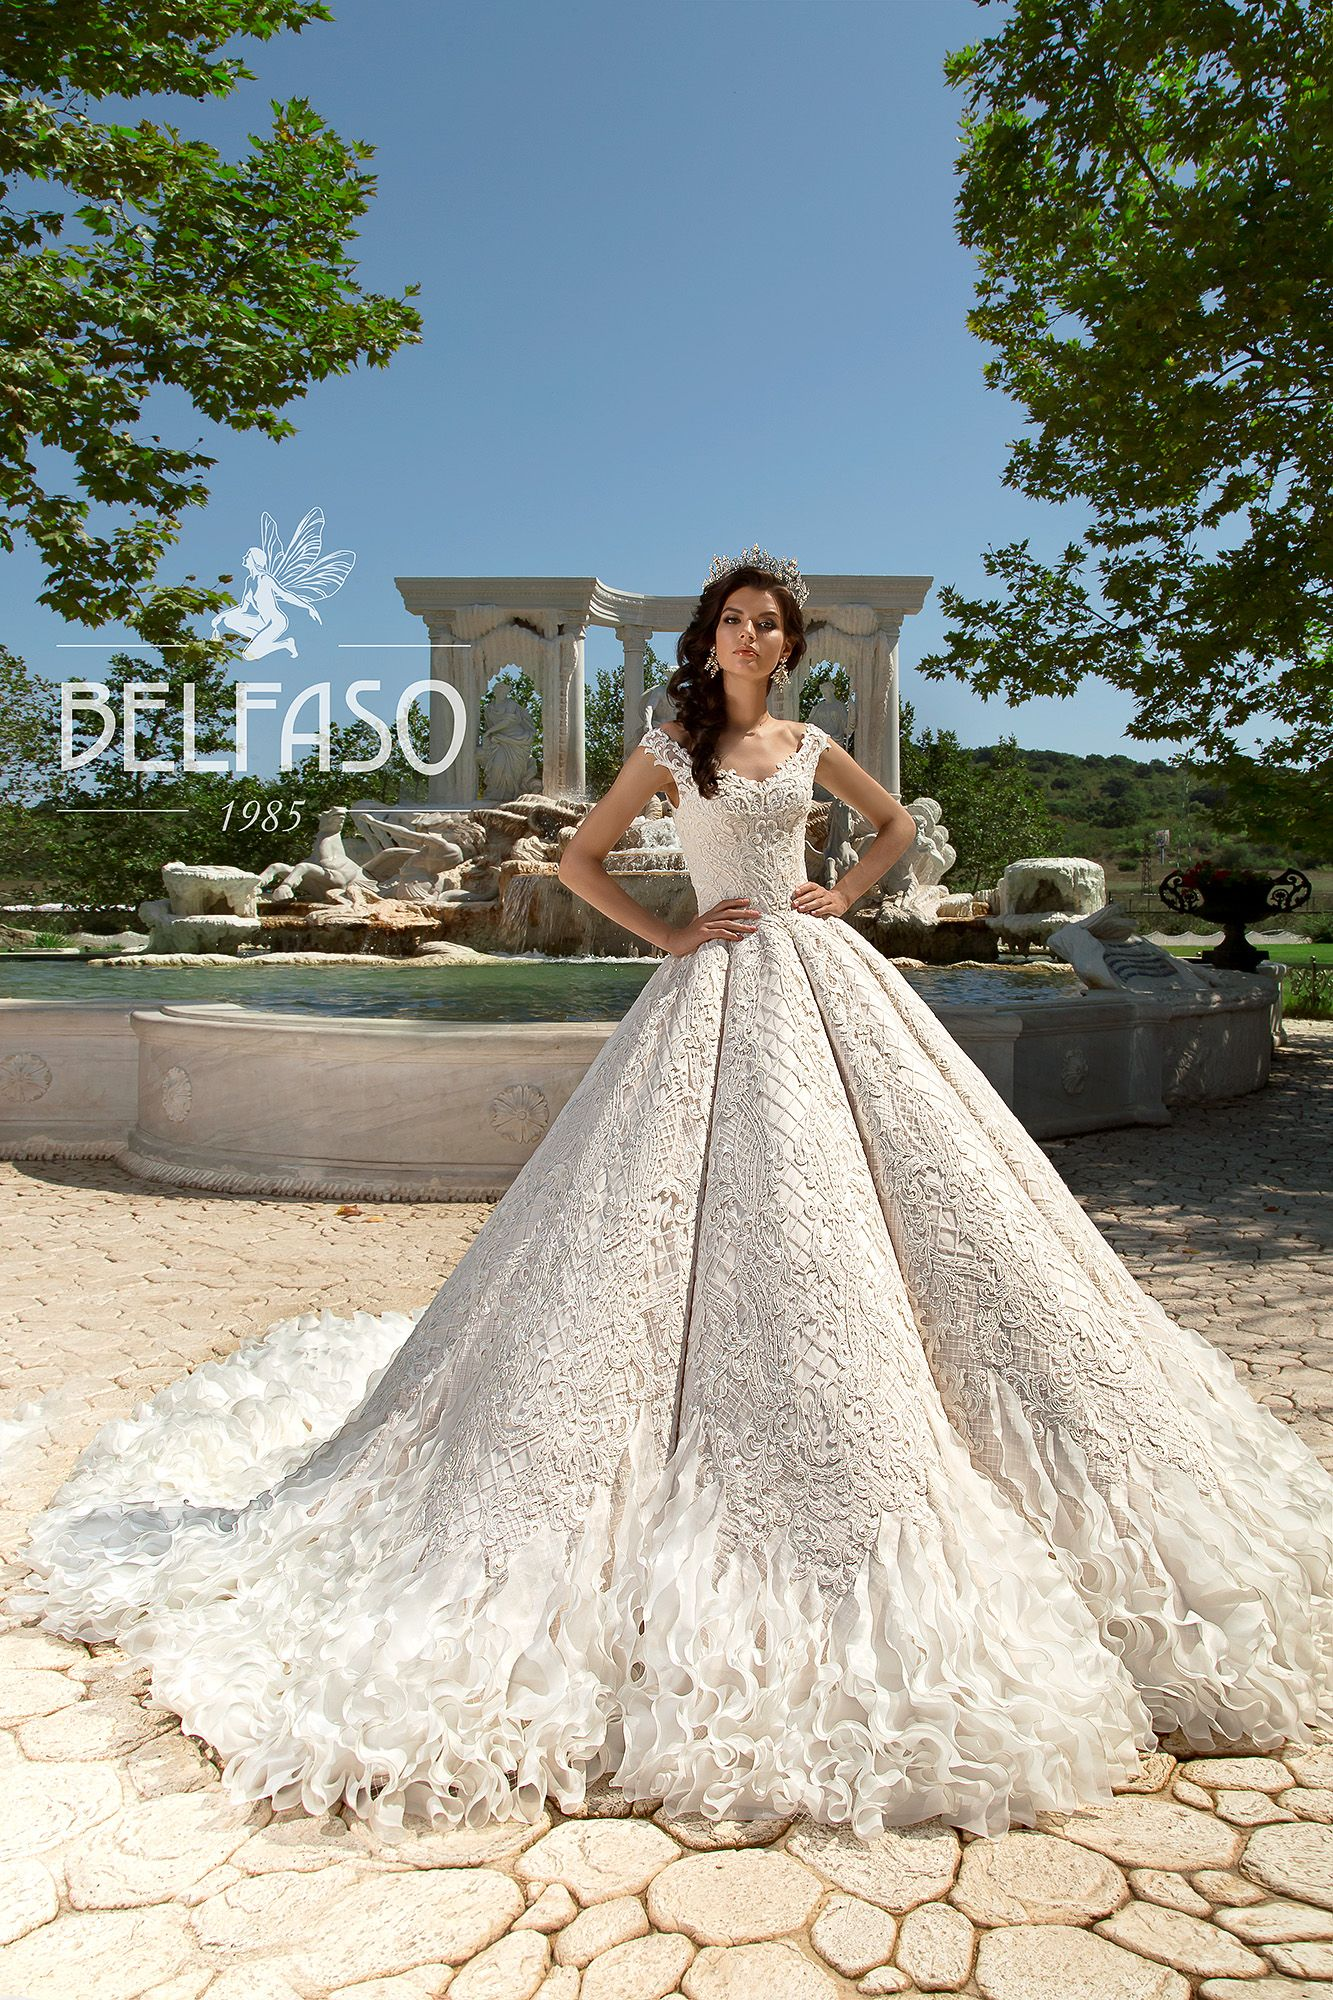 New 2018 Collection By Belfaso Couture In Charmé Gaby Bridal Gown Boutique Clearwater Fl